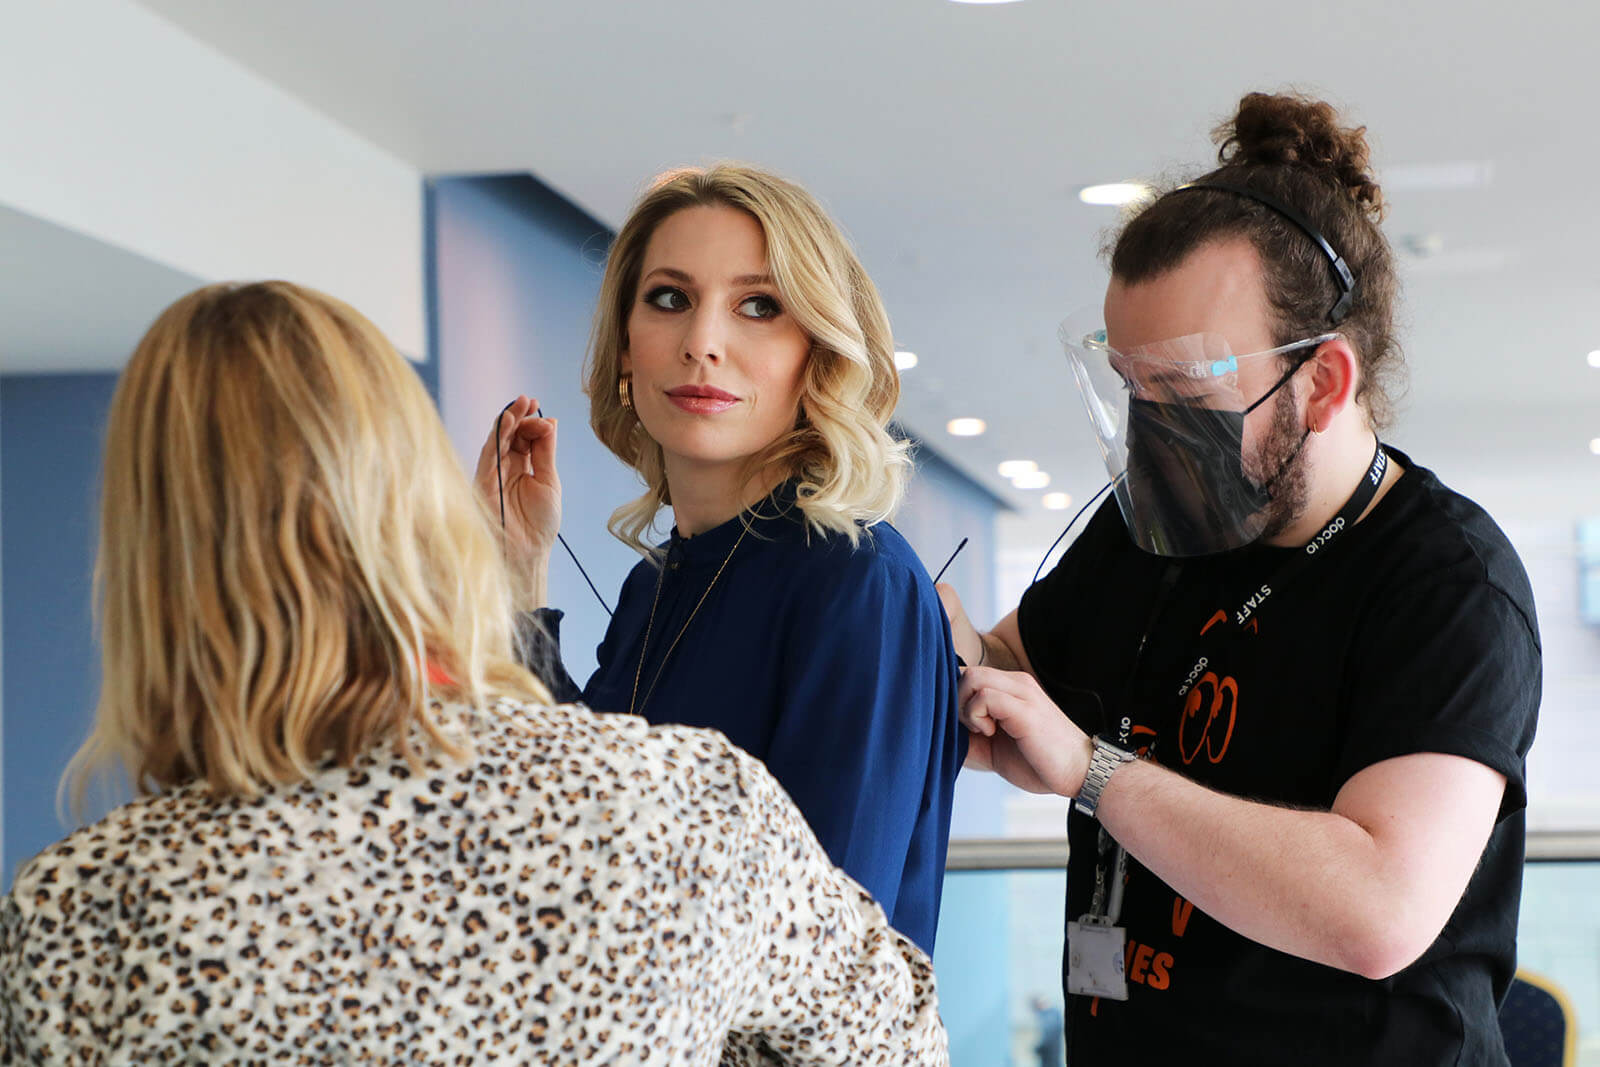 Actress and Presenter Jemma Bolt being mic'd up by two members of the event team at Best Companies Live